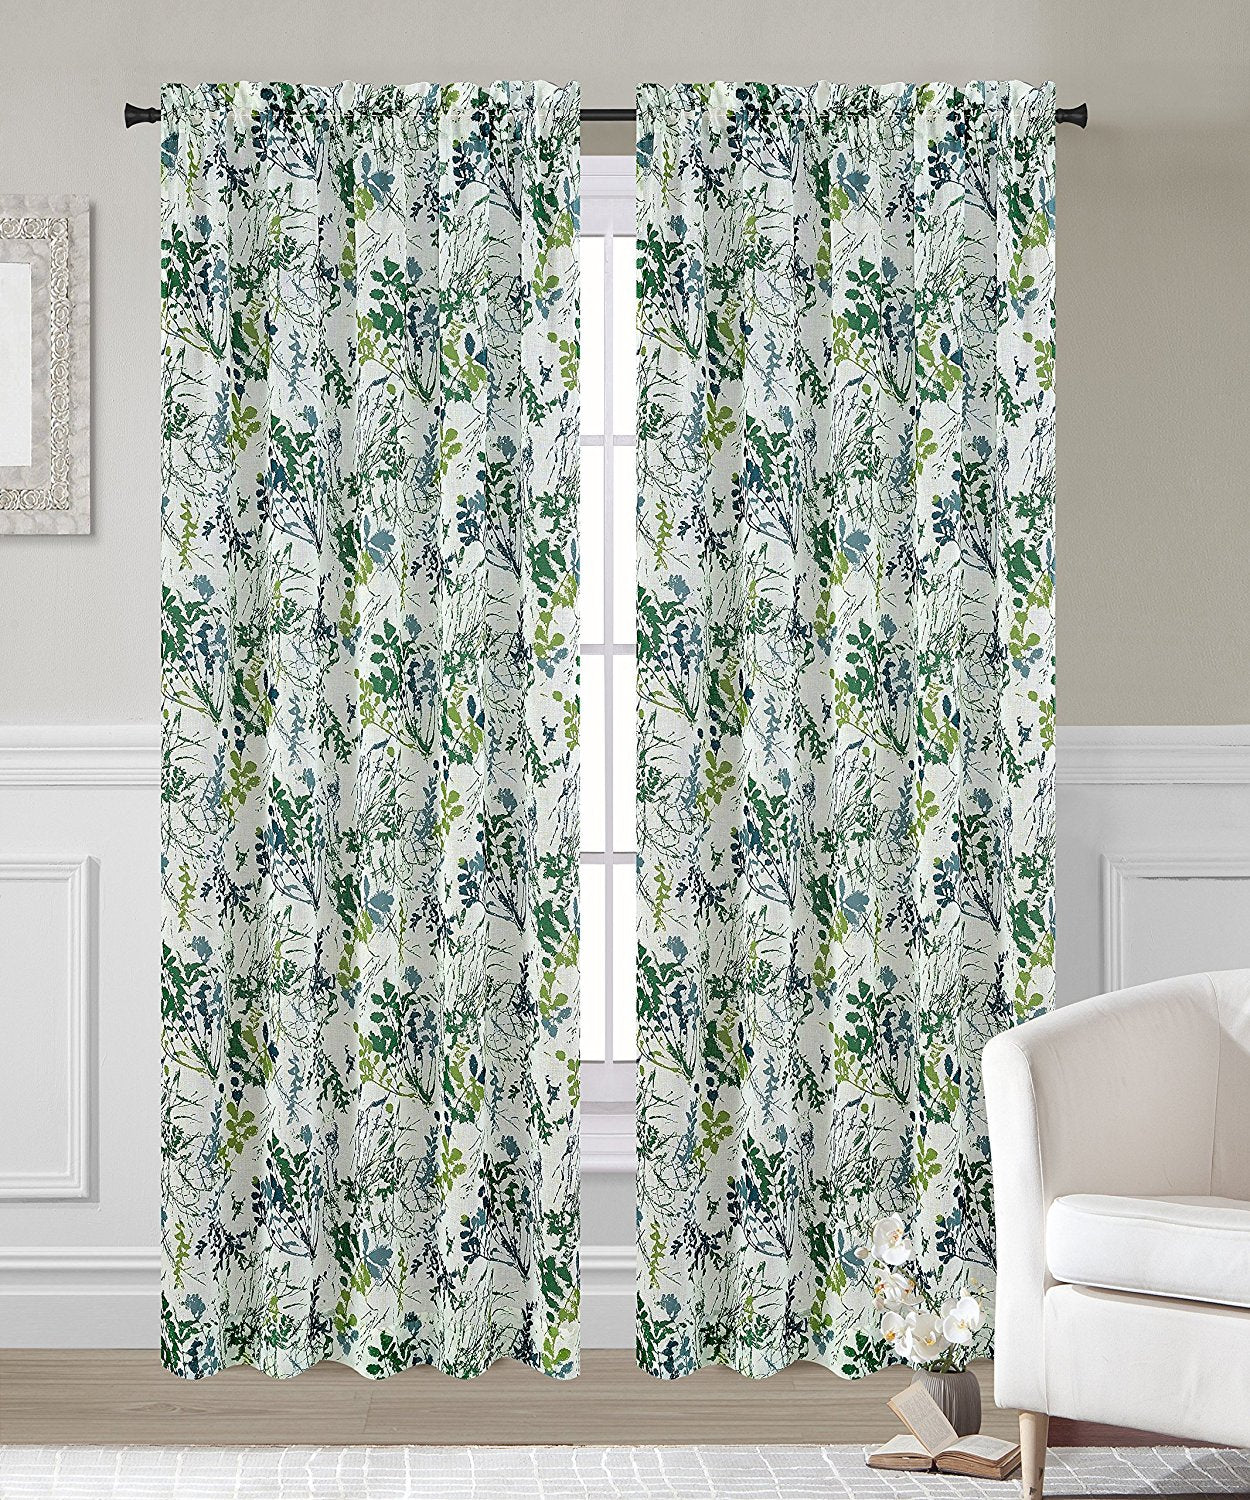 Set of 2 Fauna Faux Linen Sheer Curtain Panels